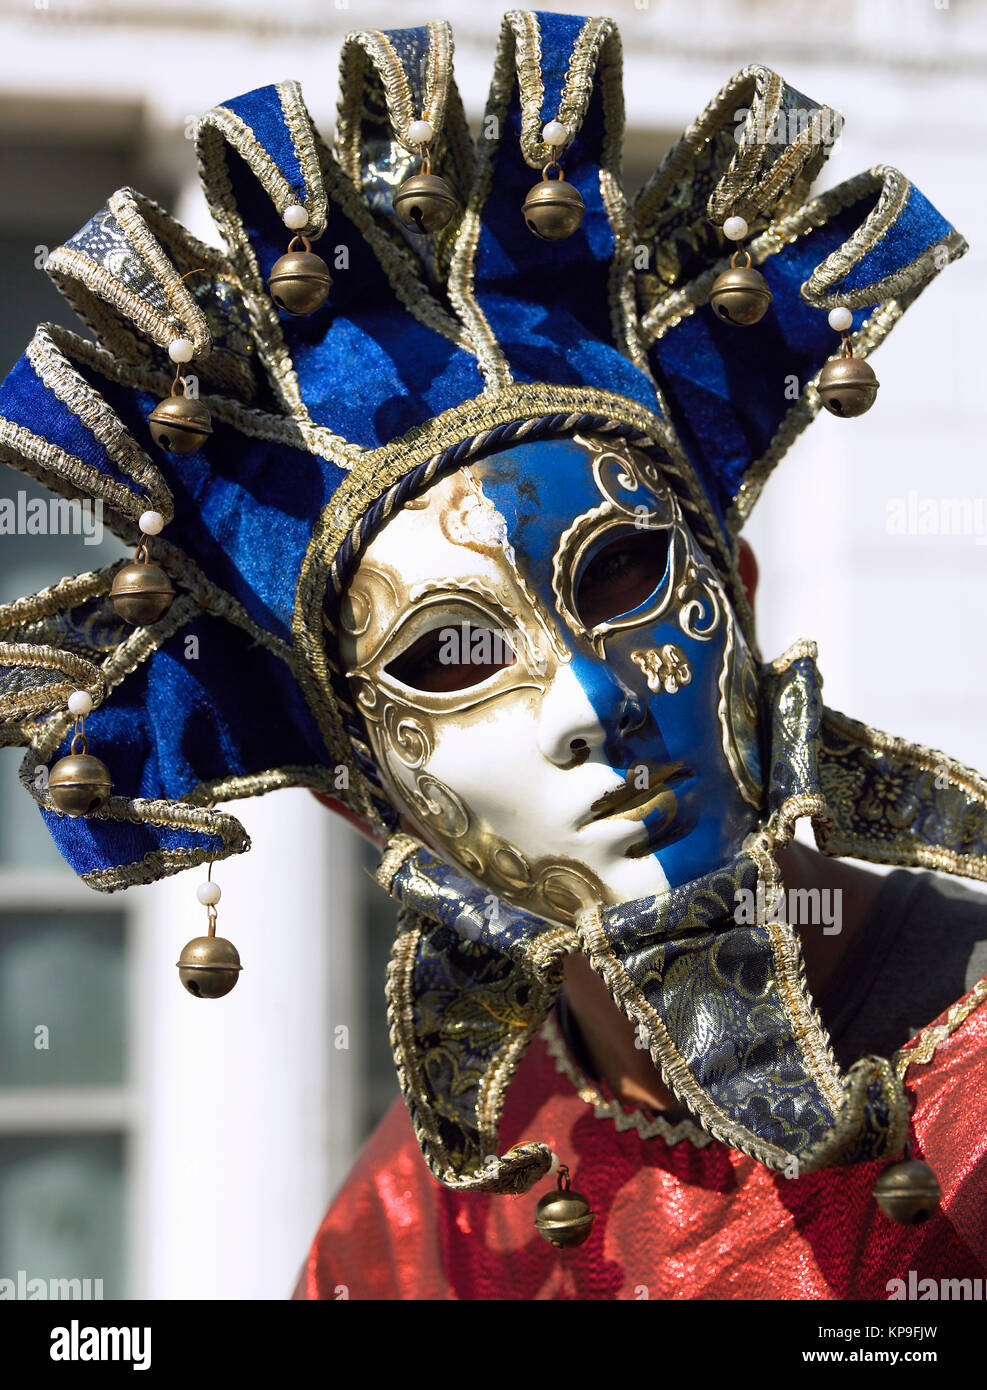 Masked figure at the Venice Carnival in the city of Venice in northern Italy. - Stock Image